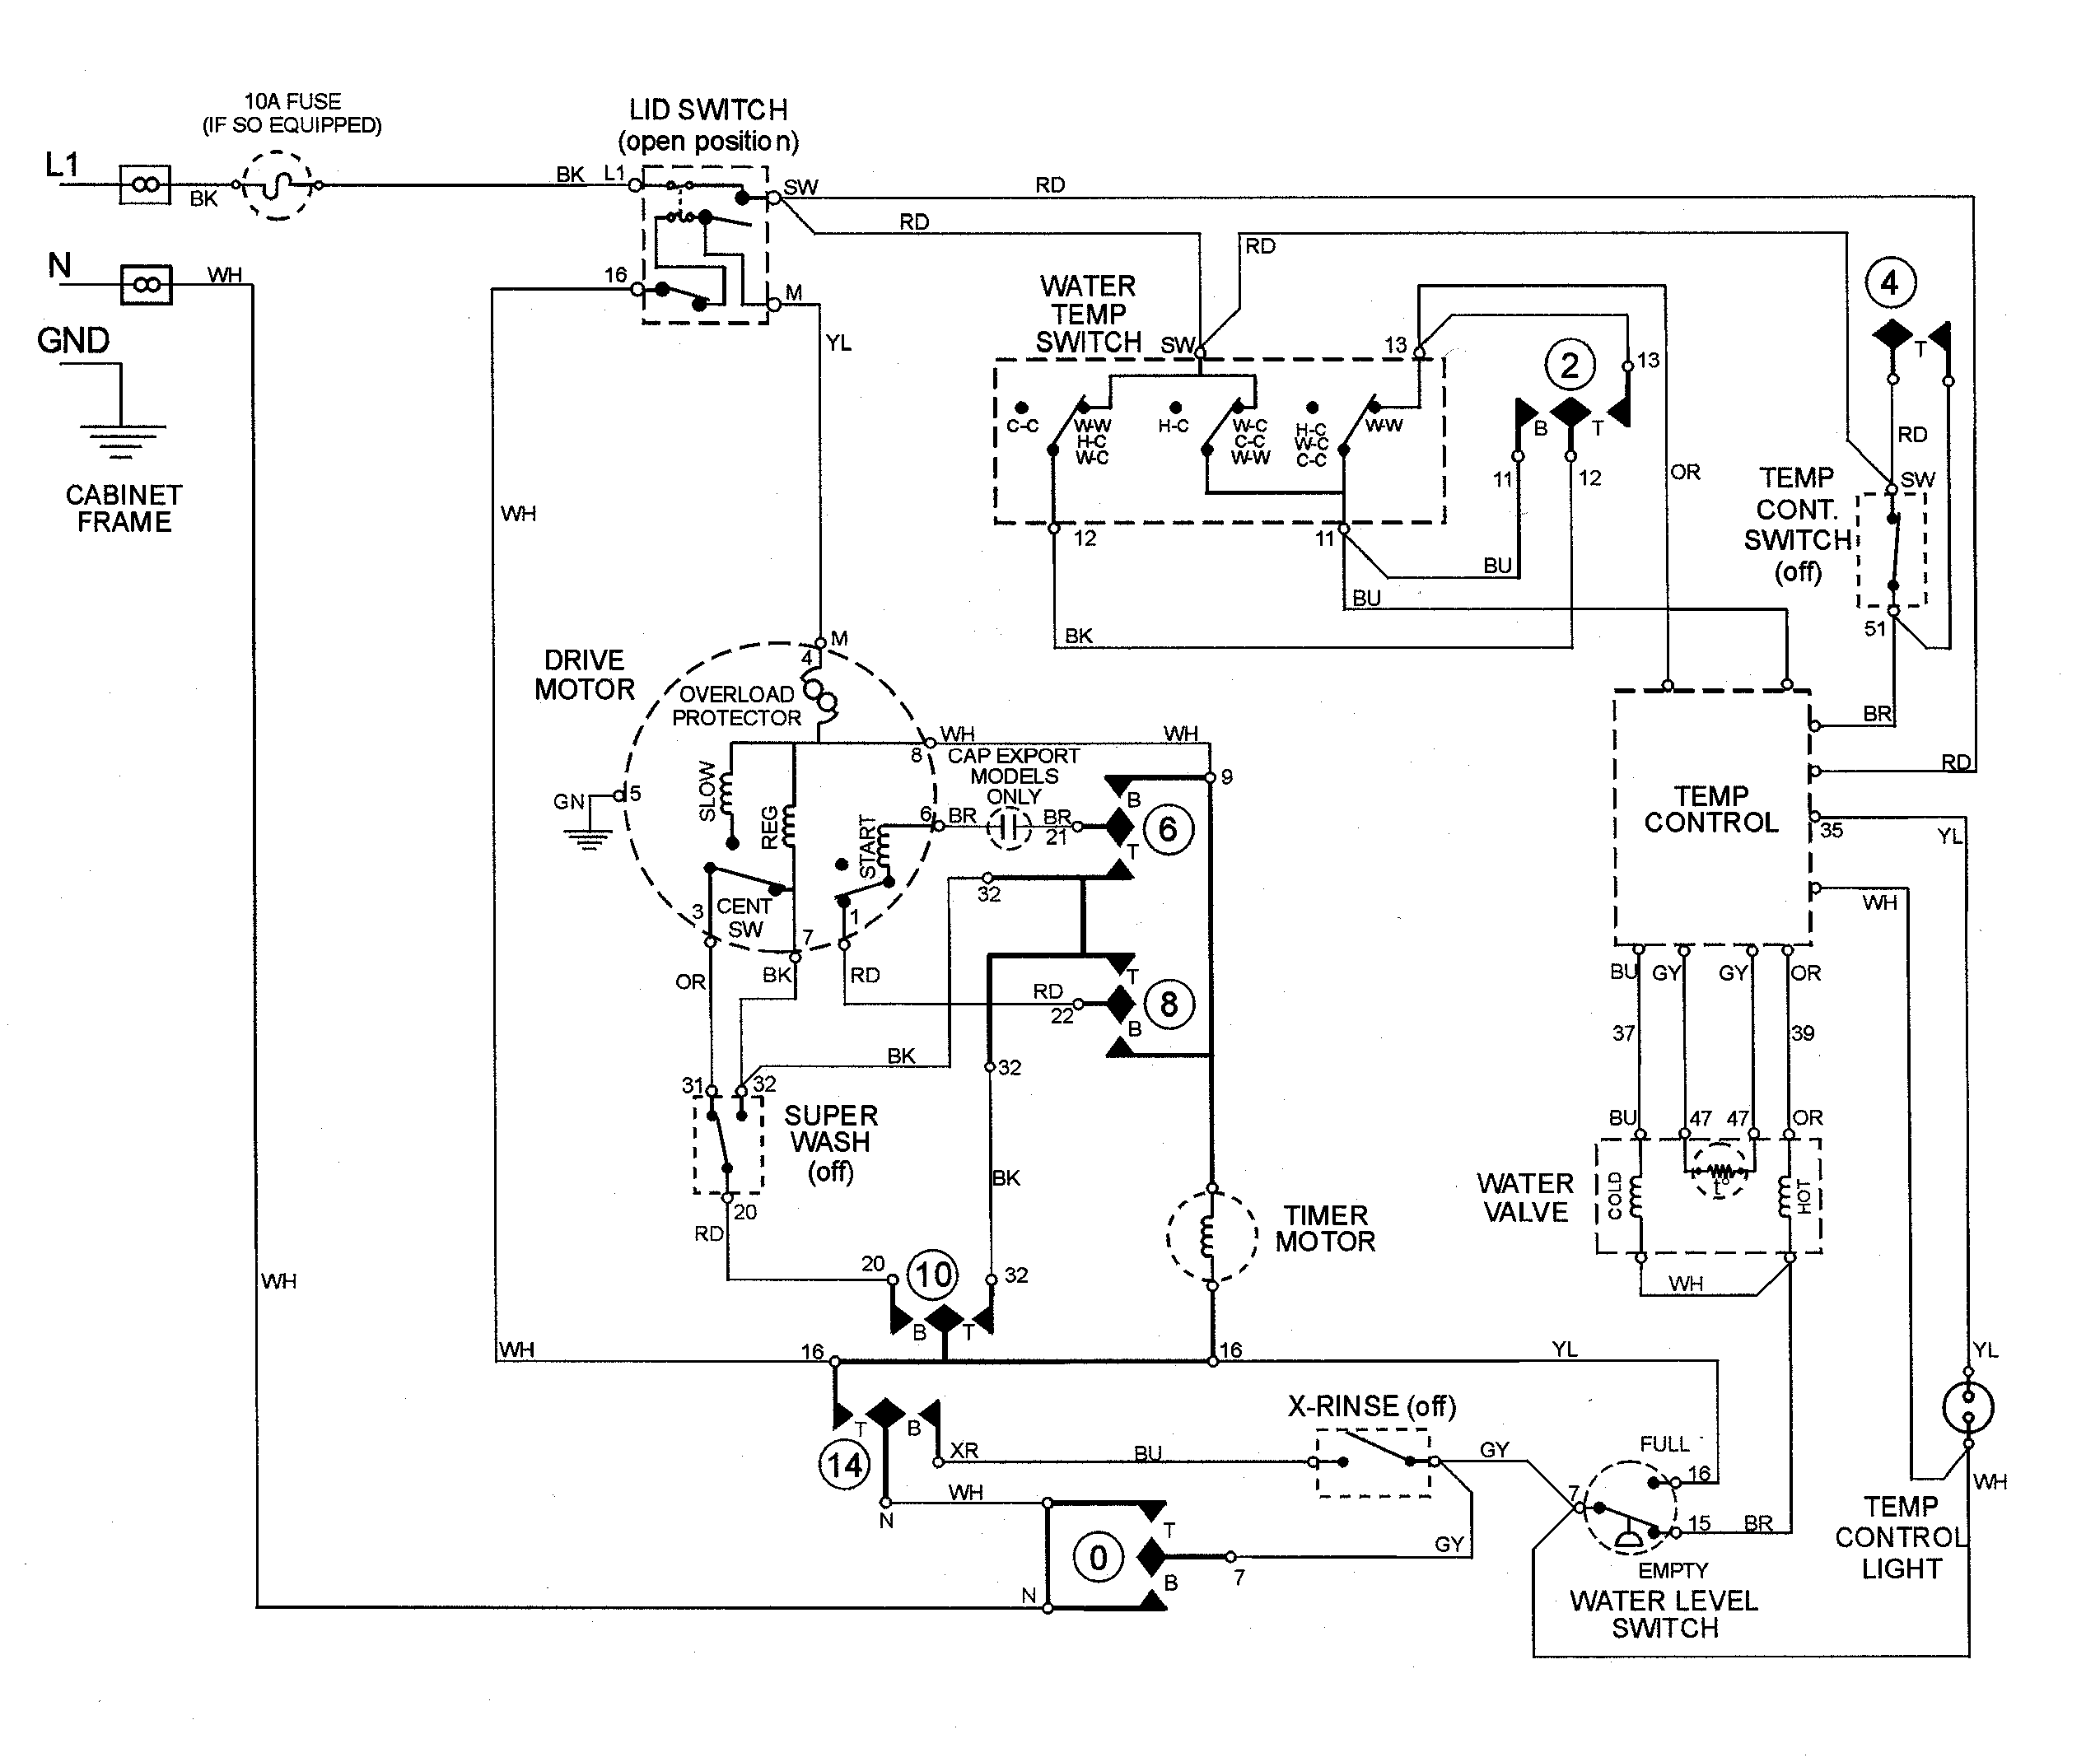 ge washing machine motor wiring diagram, ge, wiring ... hotpoint stove wiring diagram rb787bb1bb hotpoint motor wiring diagram